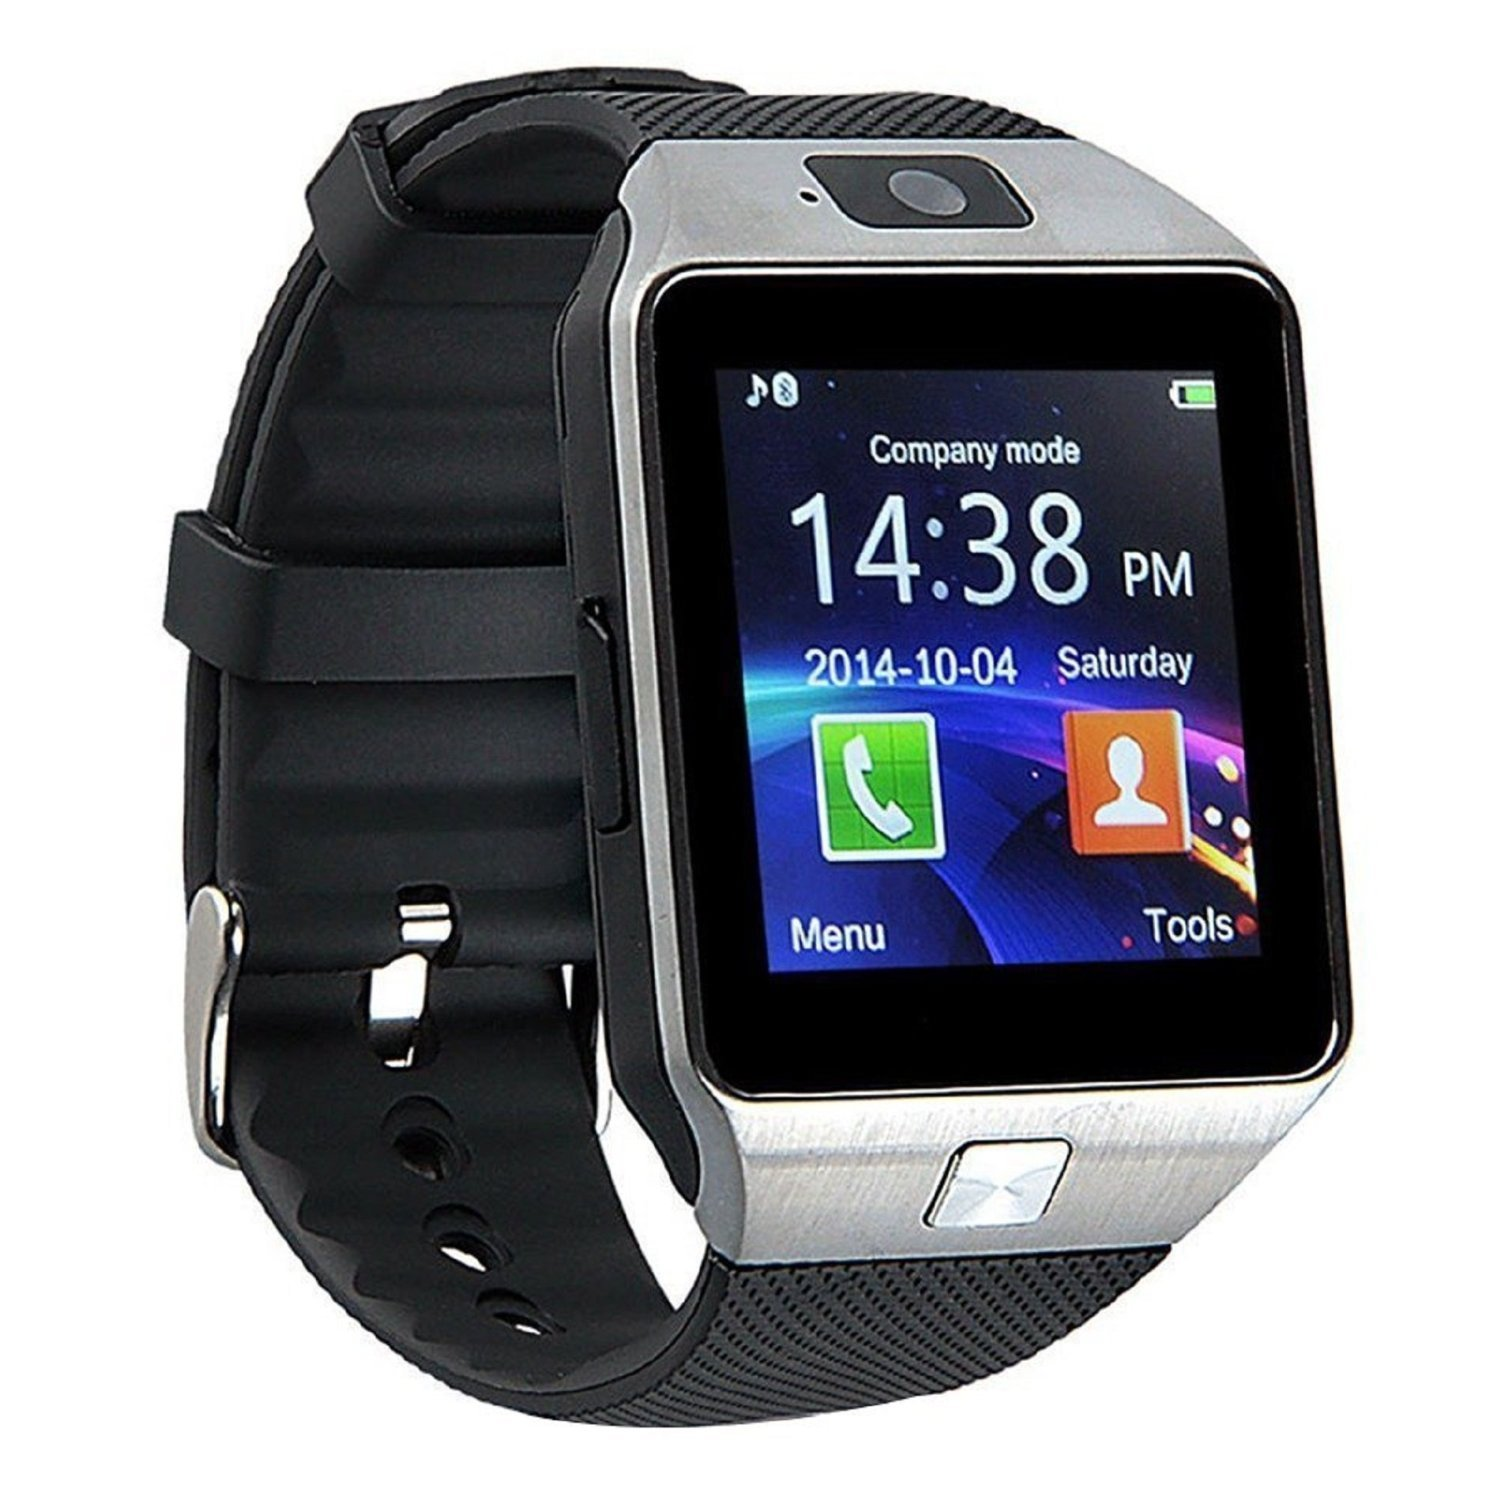 watch smartwatch smart get with cell from iphone android for camera product phone sim tf card rbvaefoosmoaqbvbaaggm bluetooth watches